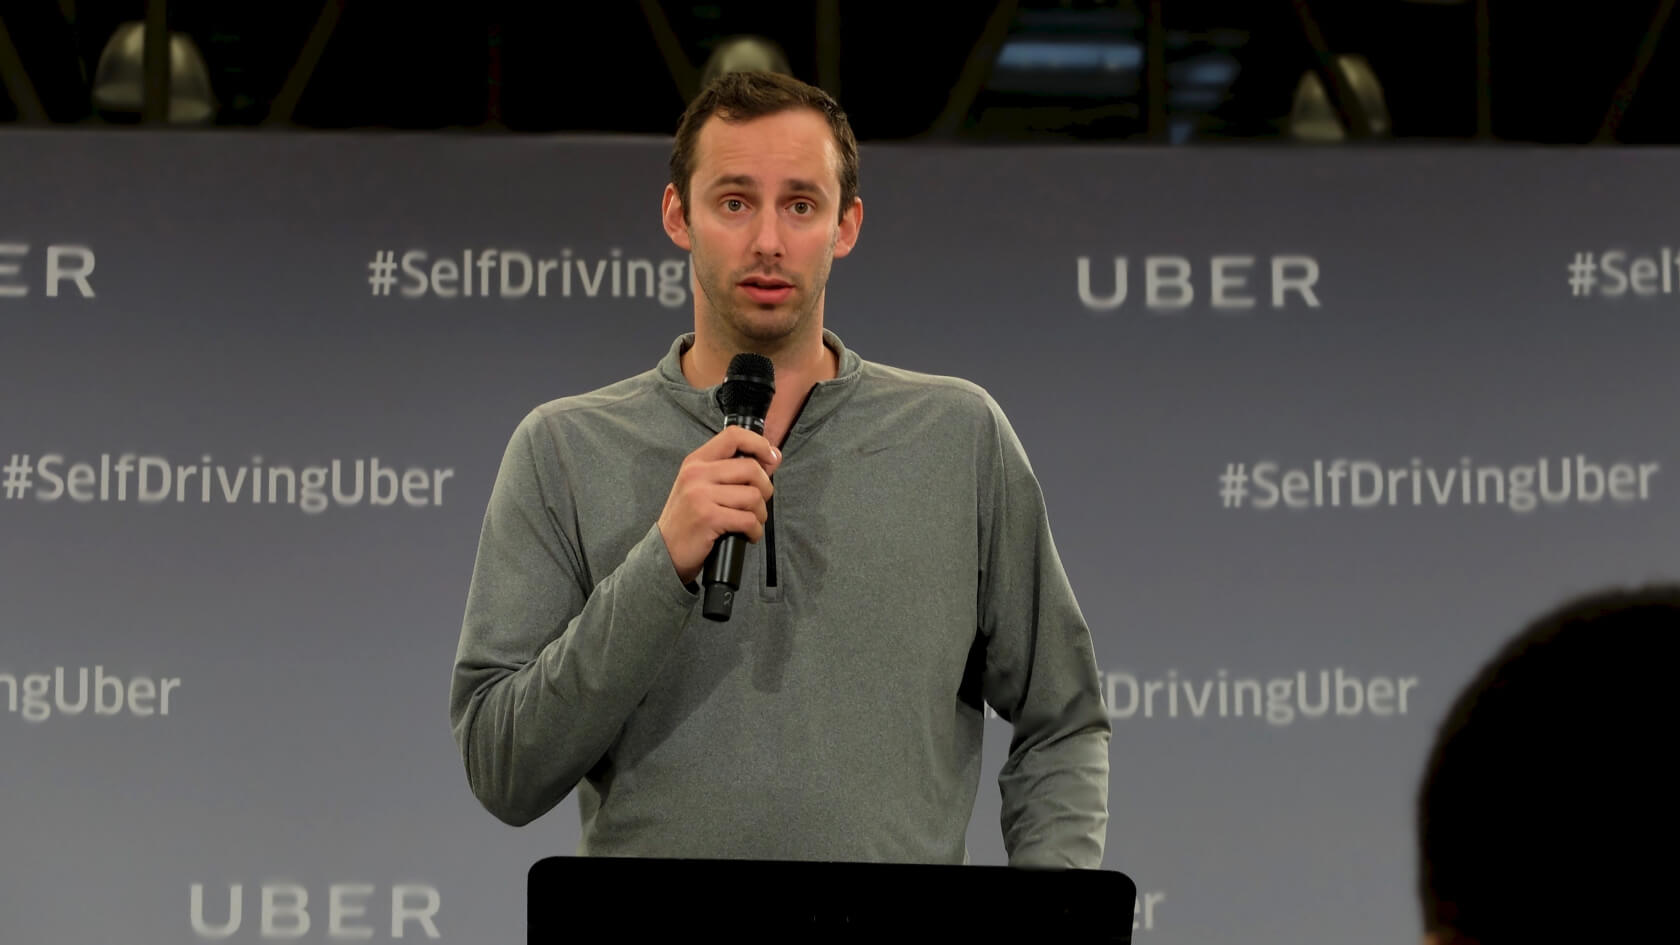 Levandowski faces fresh accusations of stealing trade secrets